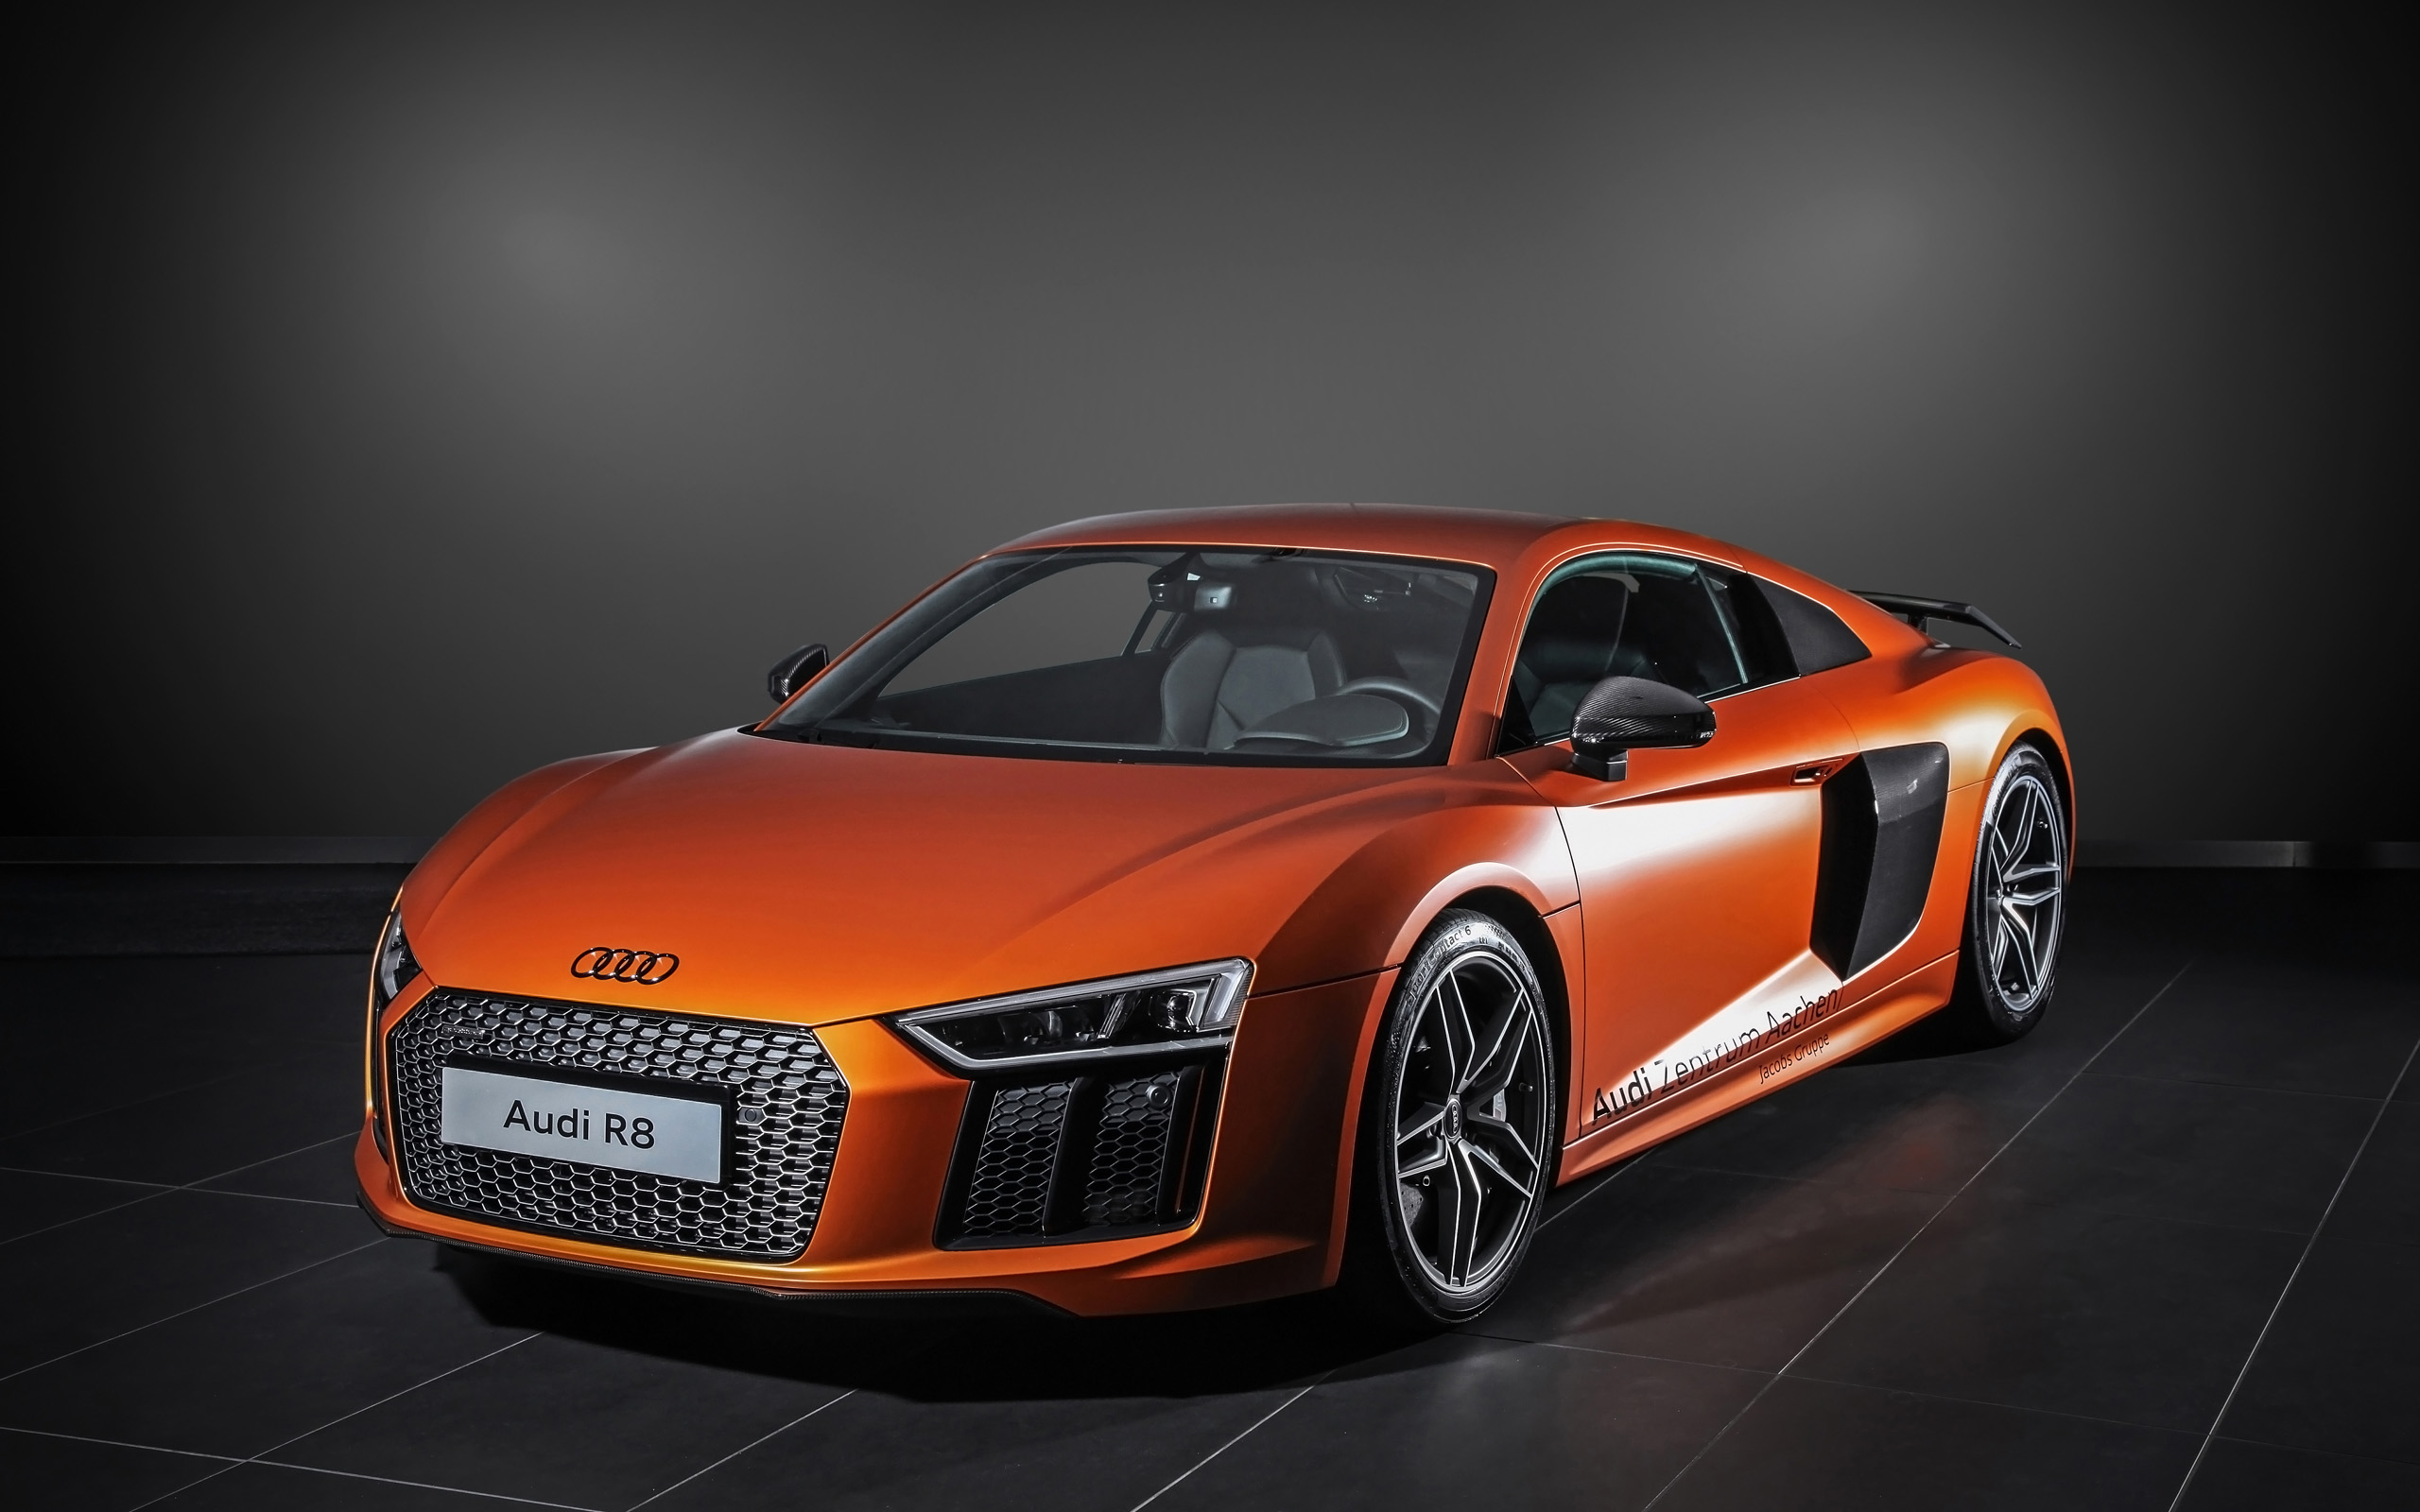 2015 HplusB Design Audi R8 V10 Plus Wallpaper | HD Car Wallpapers